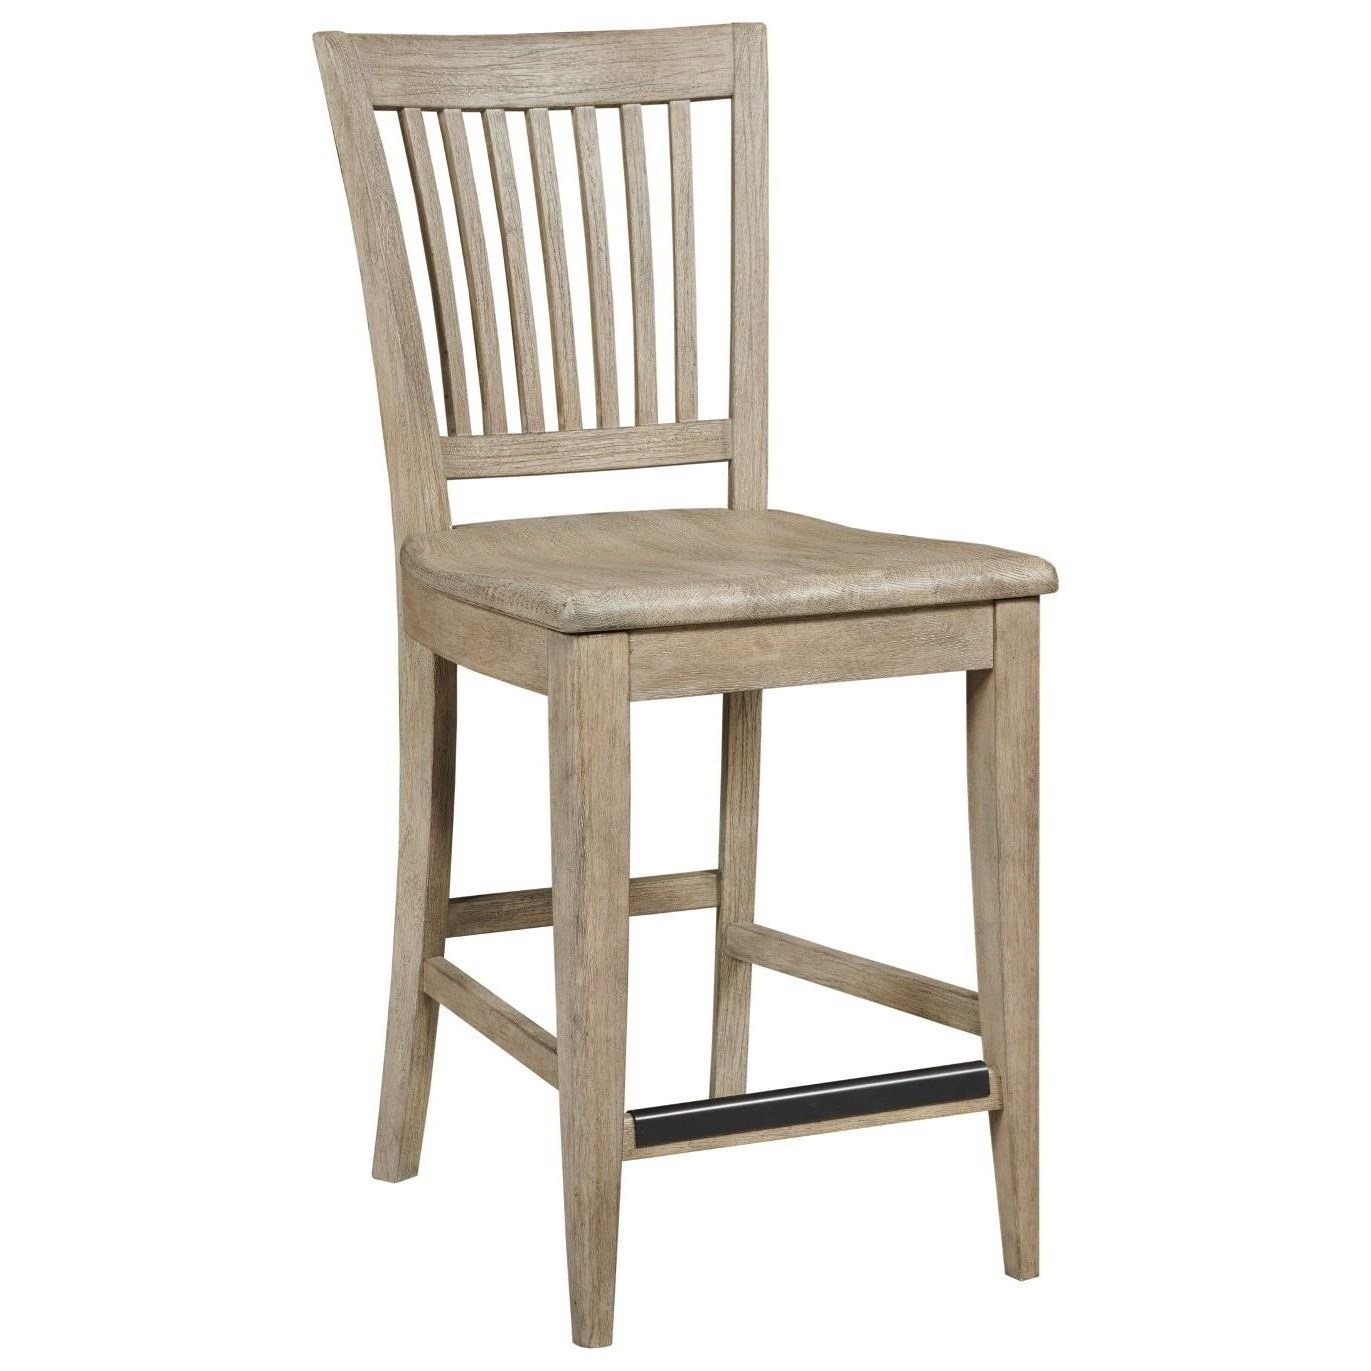 Picture of: Kincaid Furniture The Nook Solid Wood Counter Height Slat Back Chair Sheely S Furniture Appliance Bar Stools